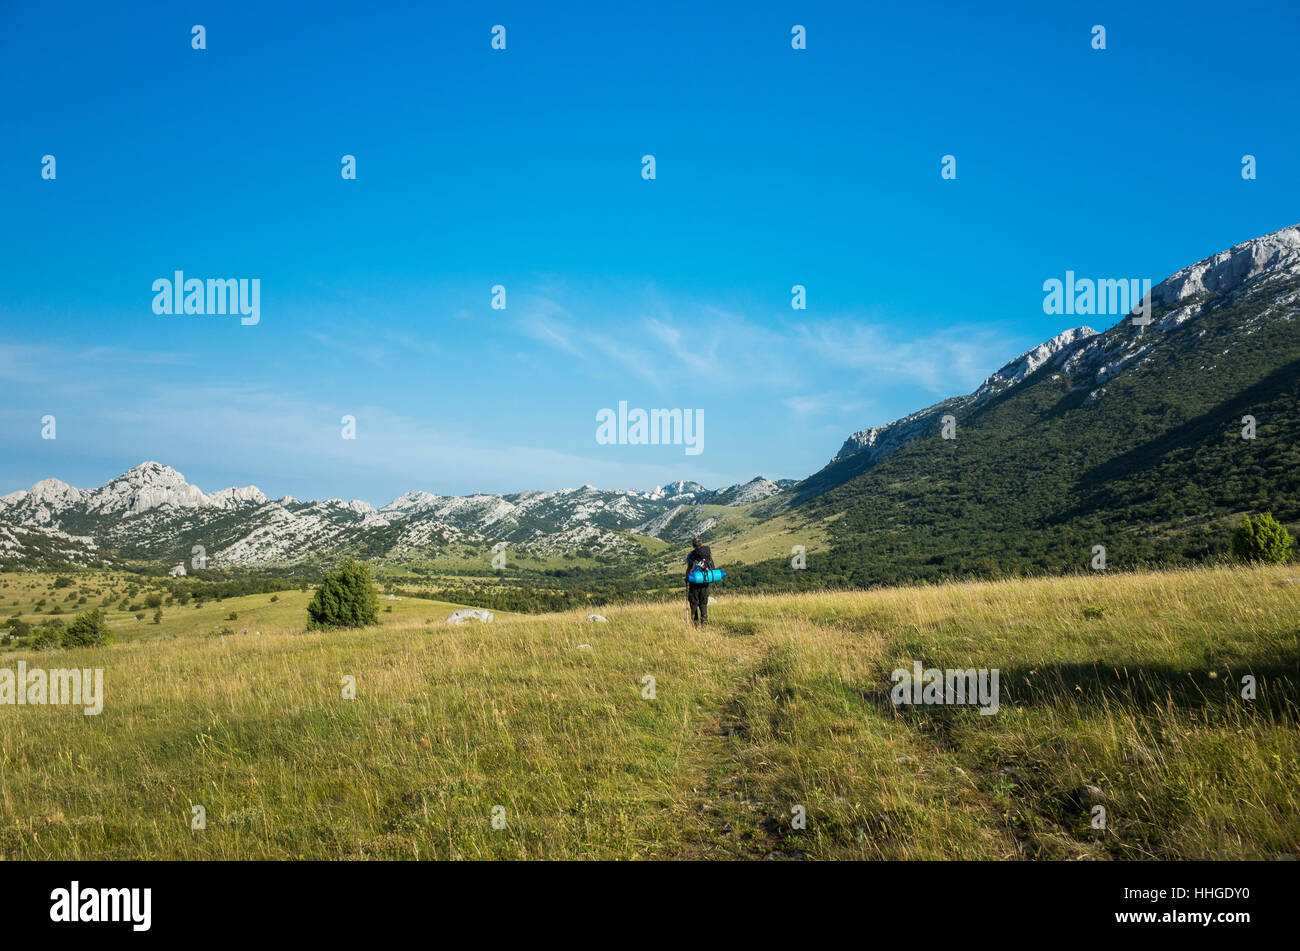 Hiking In Paklenica Velebit Mountains In Croatia. Beautiful nature and landscape photo. Nice warm summer day. Calm, Stock Photo